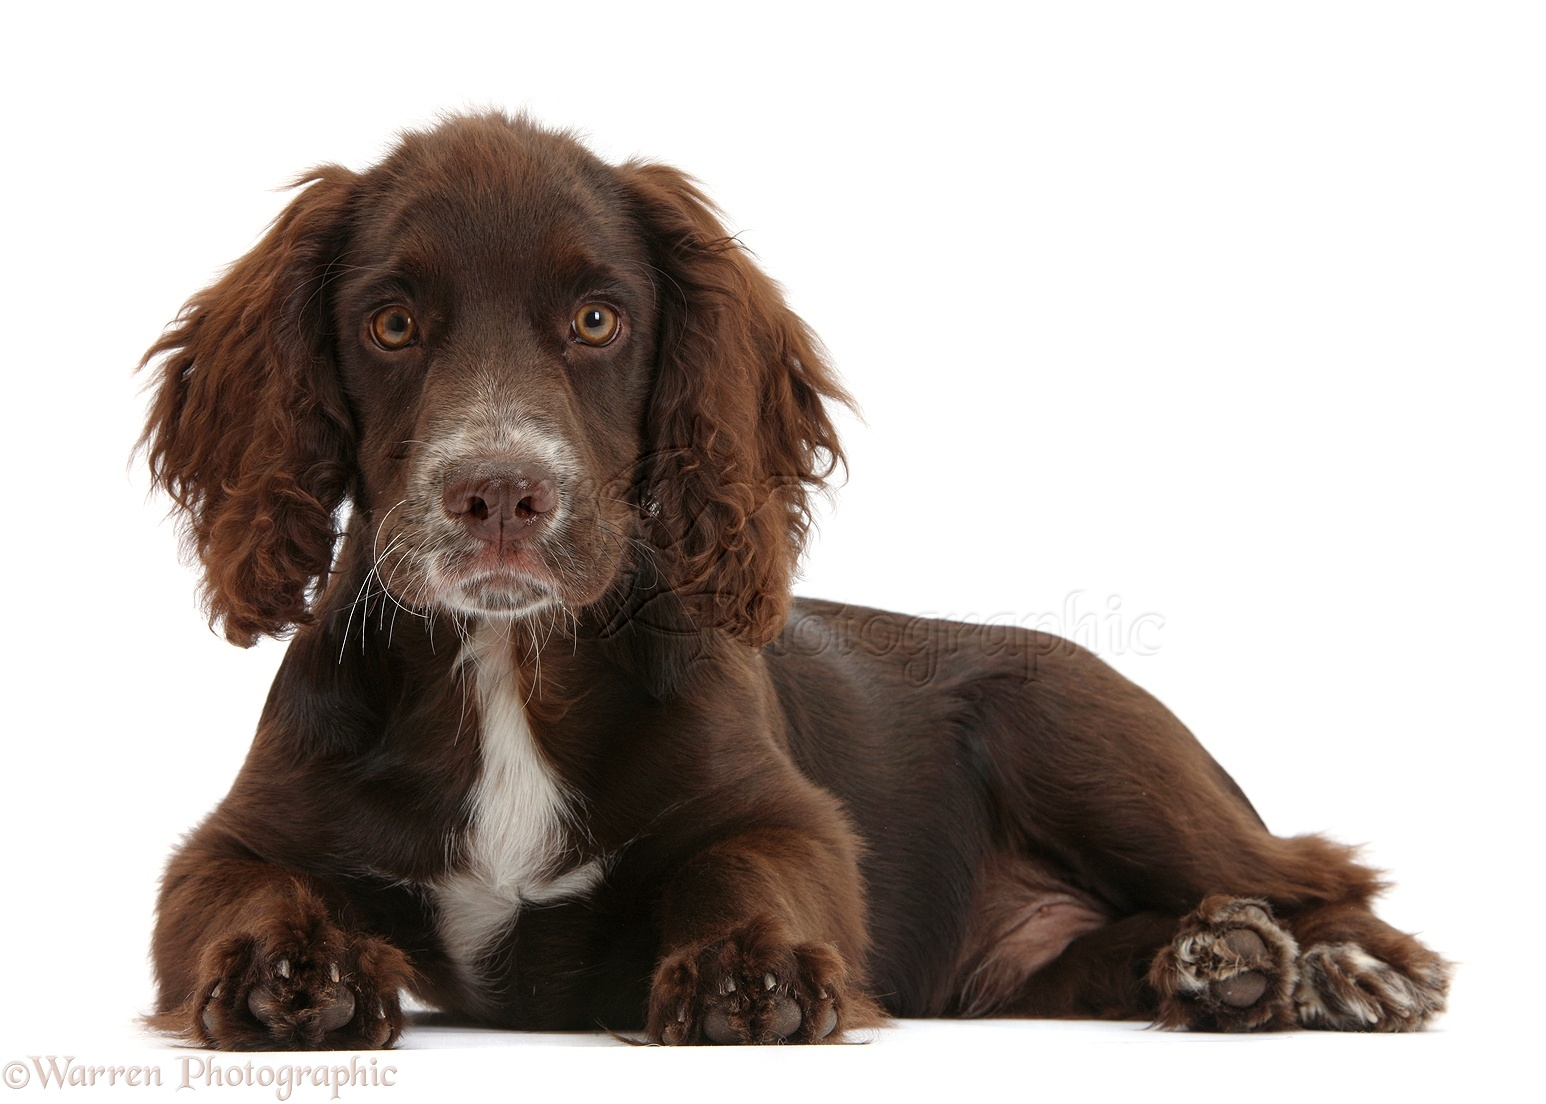 Dog: Chocolate Cocker Spaniel pup photo - WP34665